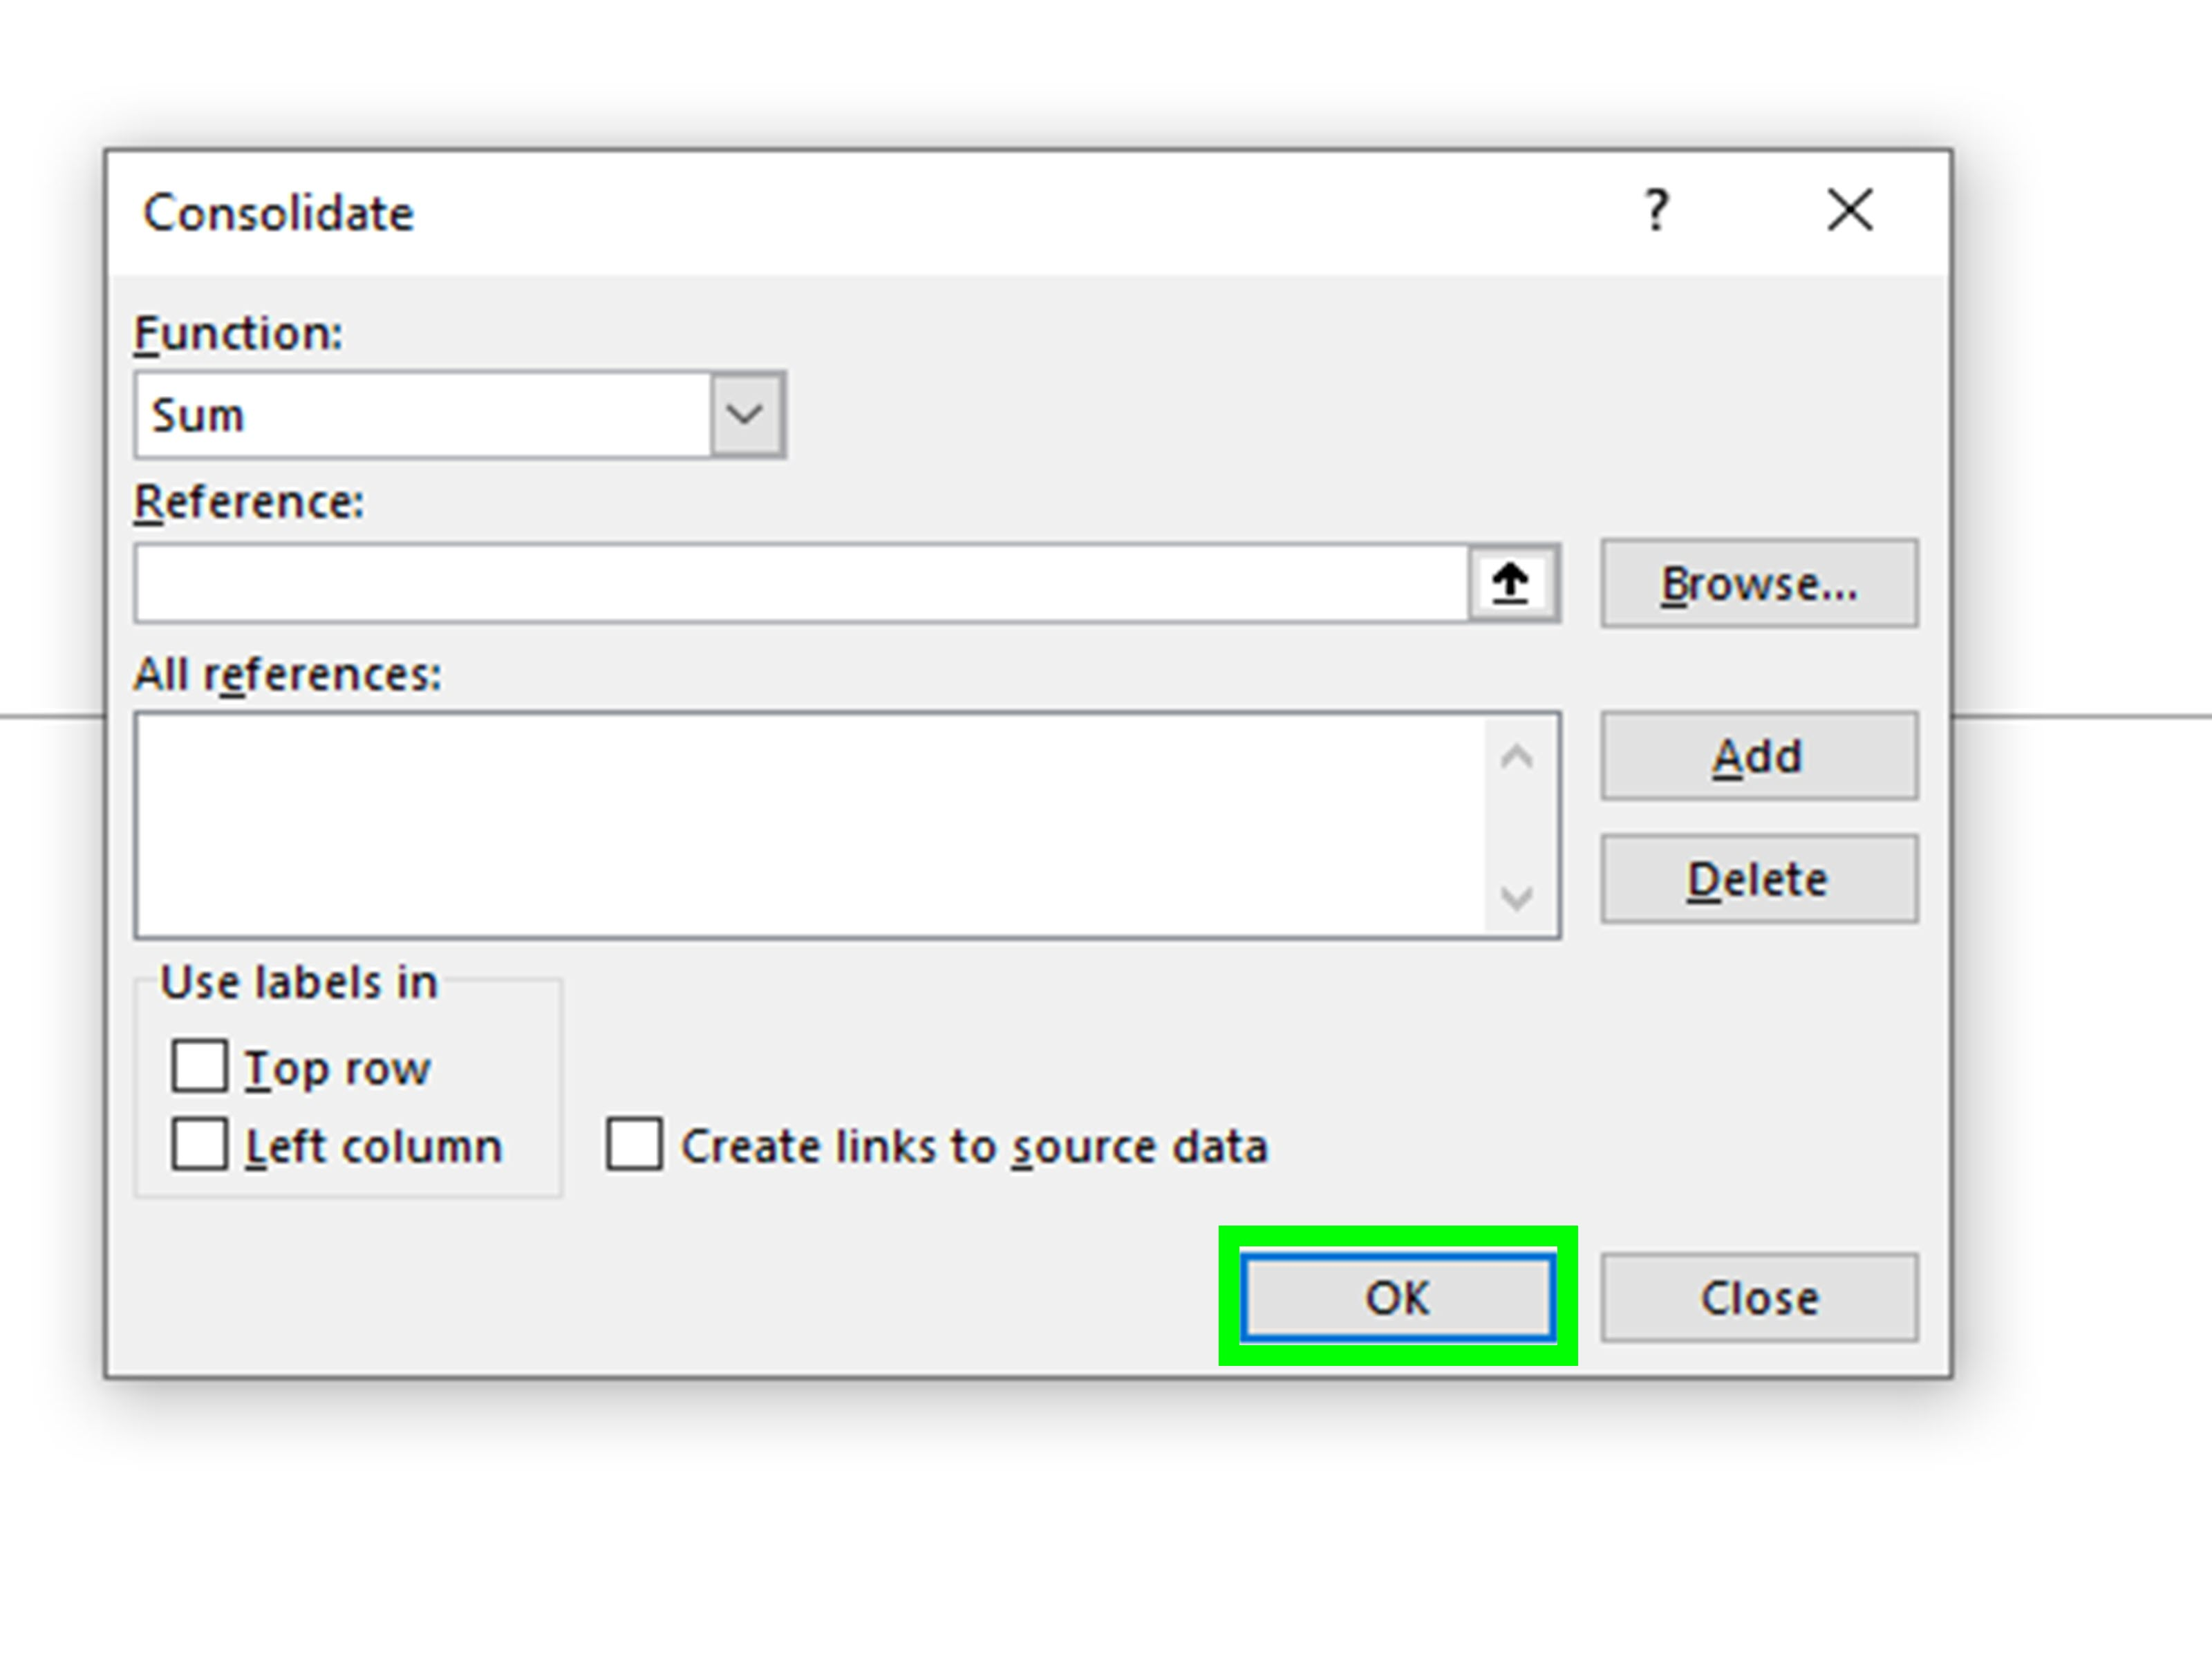 4 Easy Ways To Consolidate In Excel